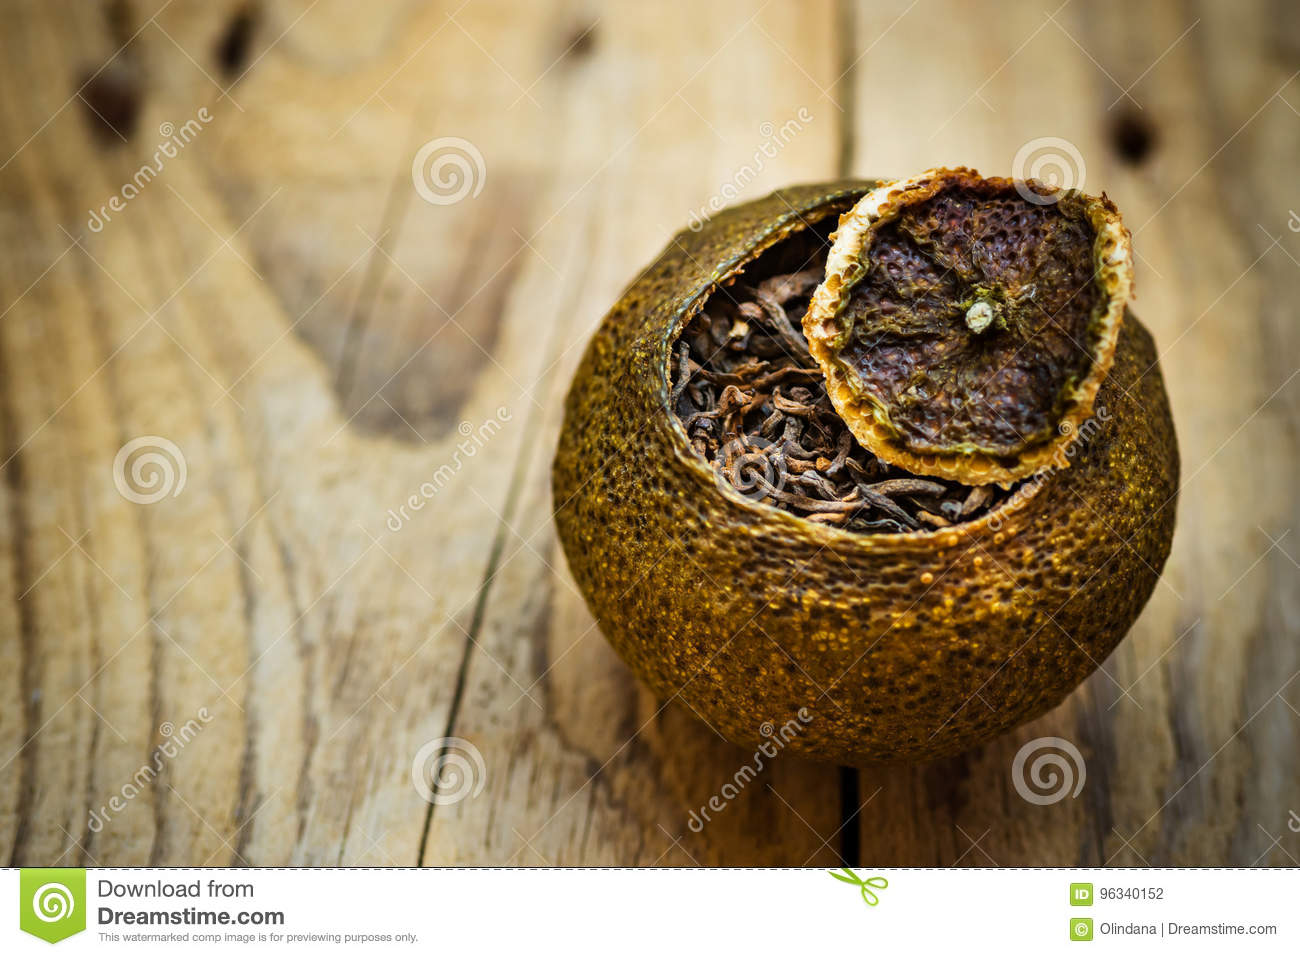 Aged fermented black chinese puer tea in a tangerine peel with lid, weathered wood background, close up